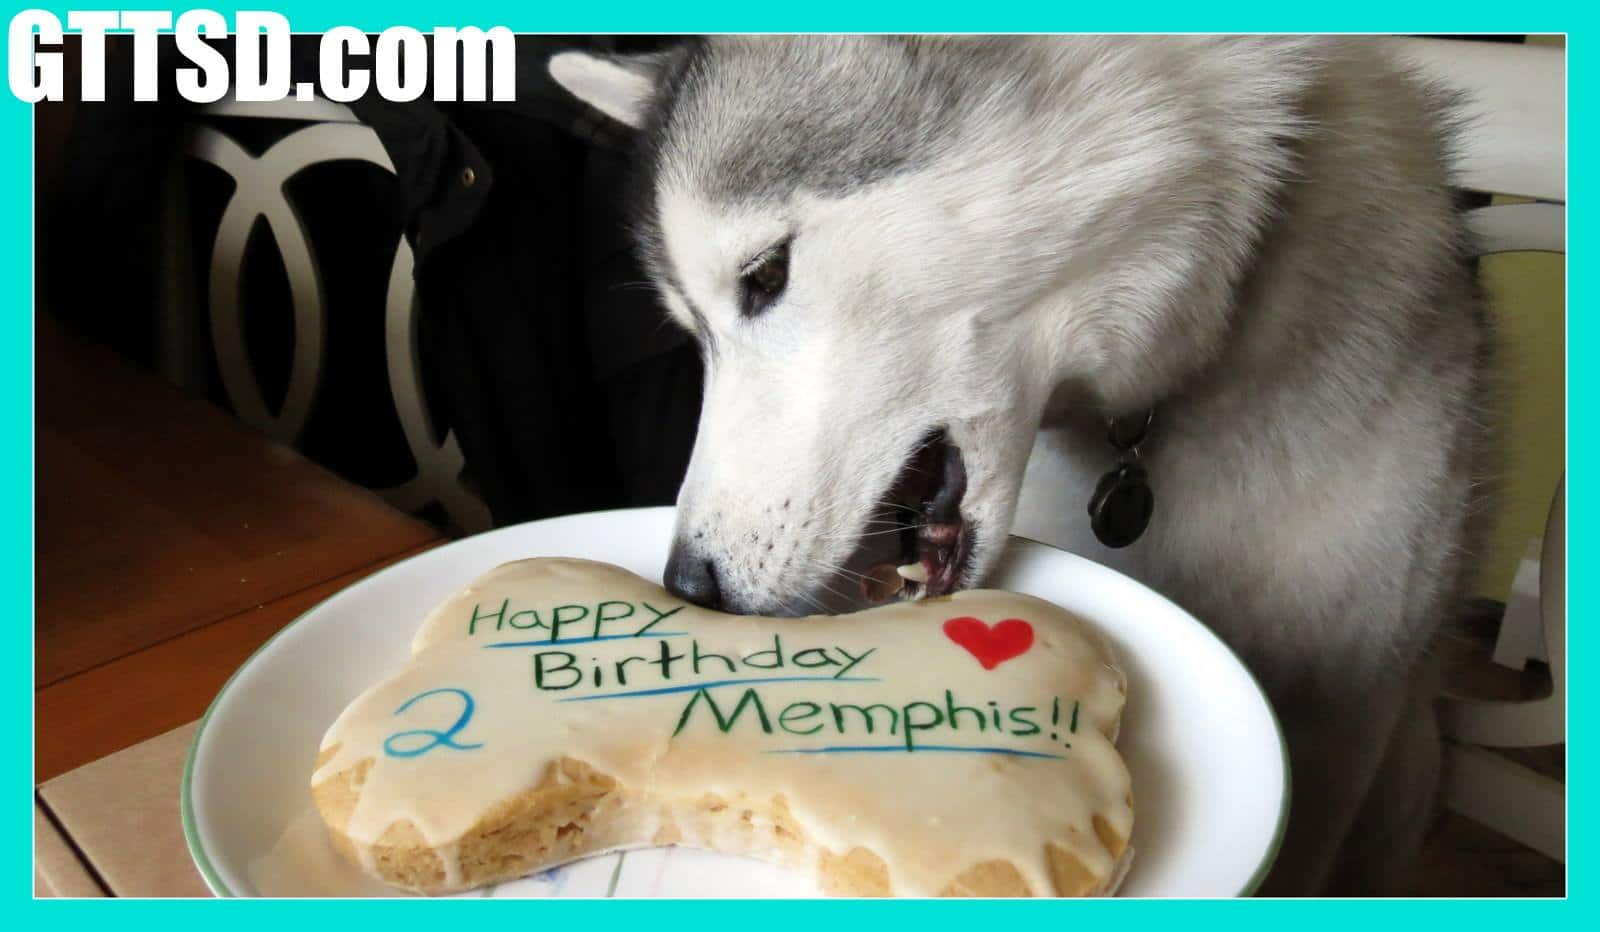 Dog stealing birthday cake - photo#9